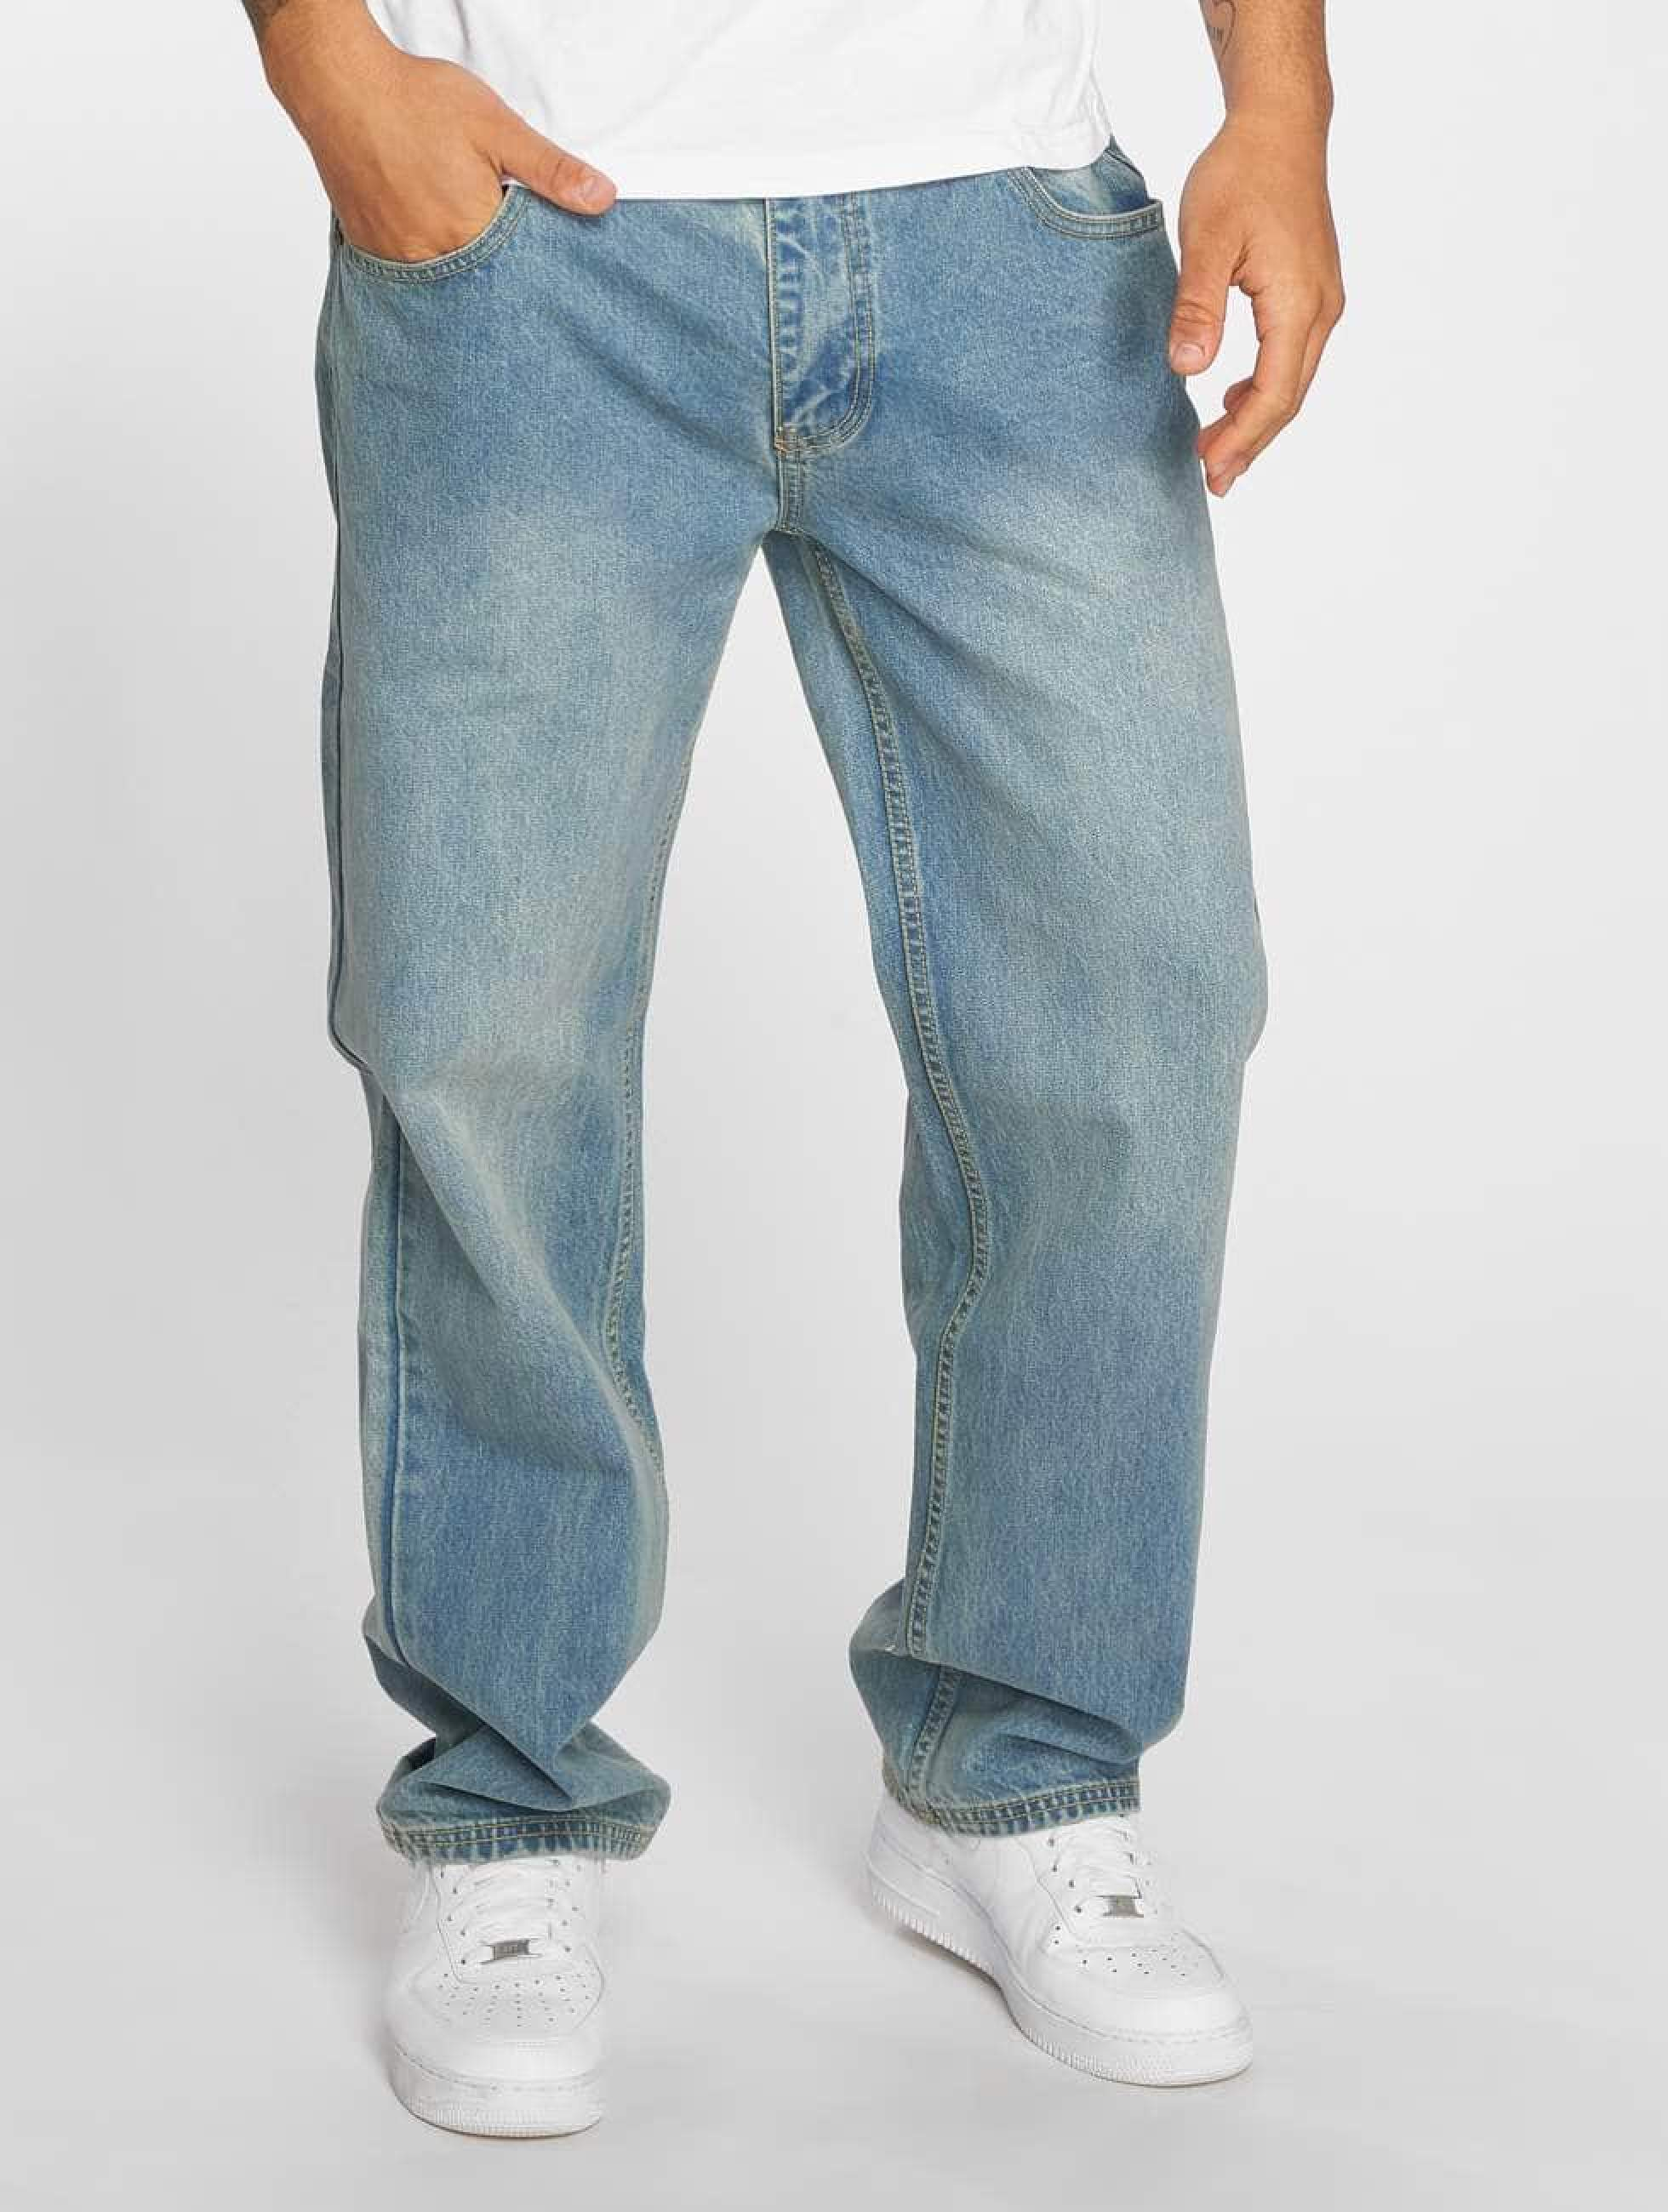 Ecko Unltd. / Loose Fit Jeans Gordon's Lo in blue W 32 L 32